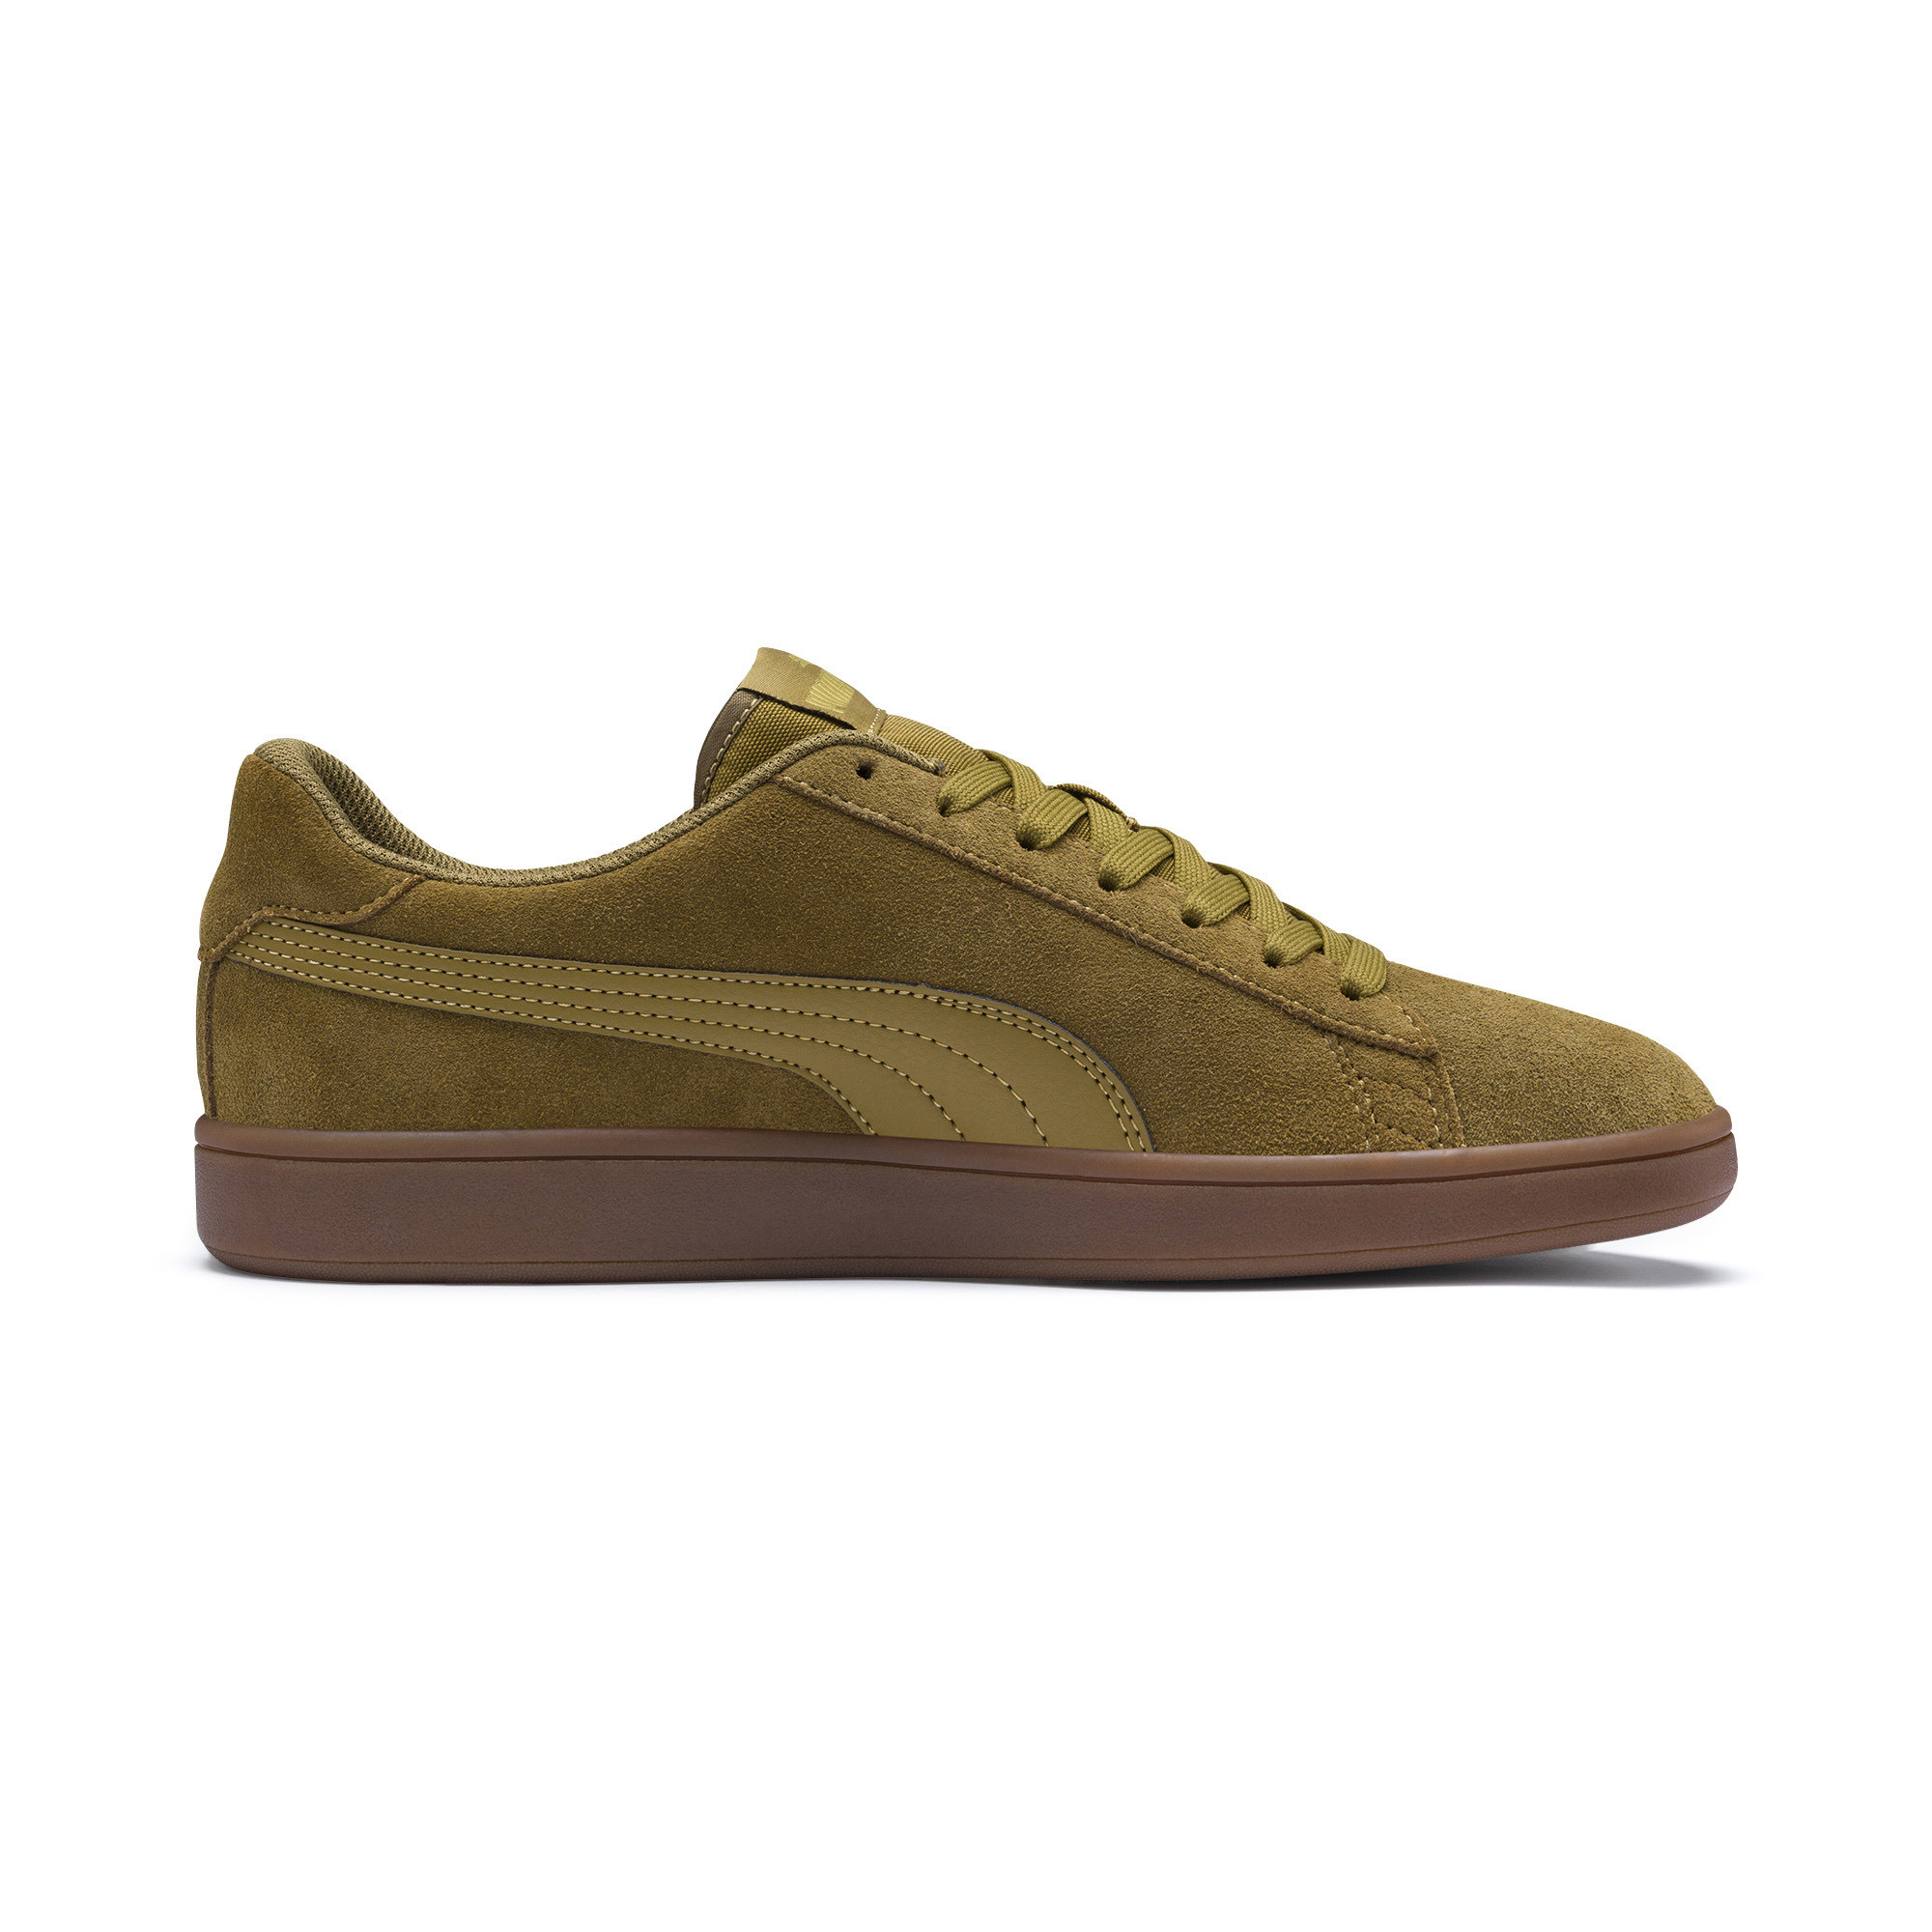 PUMA-PUMA-Smash-v2-Men-039-s-Sneakers-Men-Shoe-Basics thumbnail 57